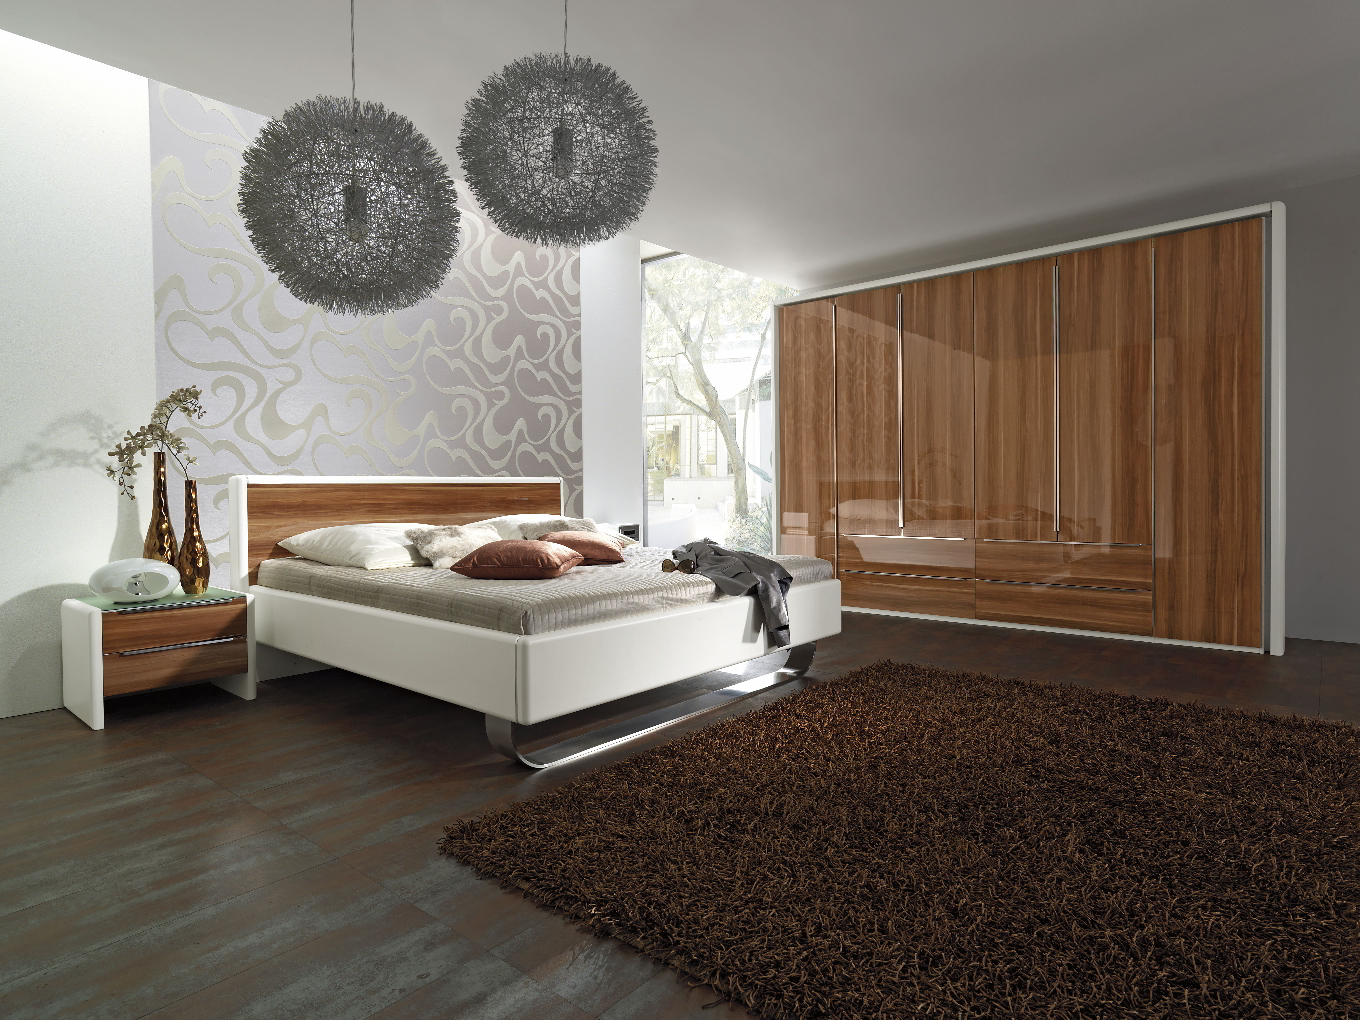 wellem bel betten kreuznach schiebet renschrank insua chiraz inaya zeta schlafzimmer. Black Bedroom Furniture Sets. Home Design Ideas